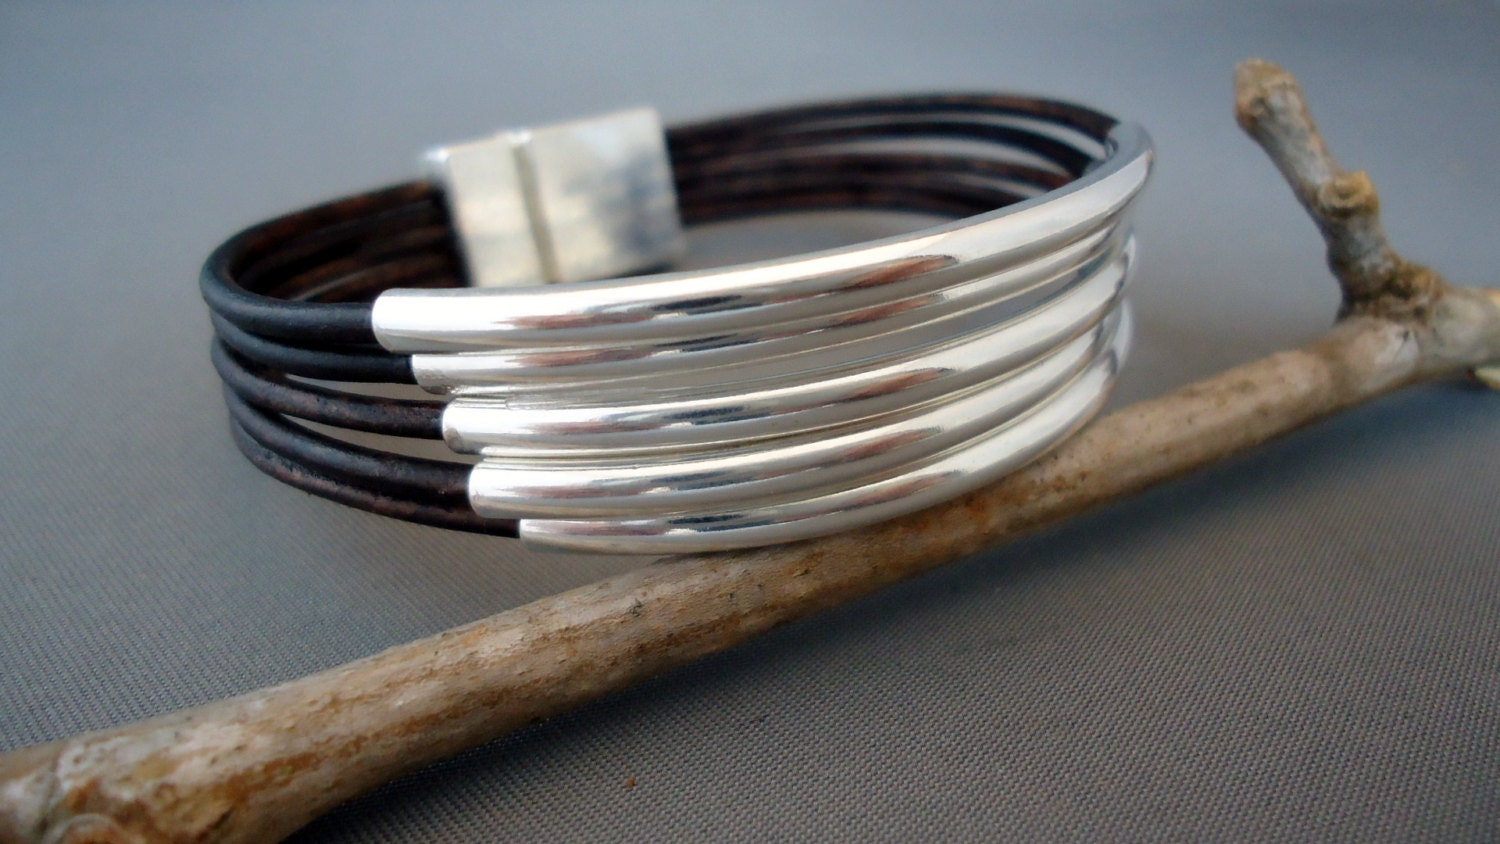 Dark,Brown,Leather,Sterling,Silver,Tubes,Bracelet,/,Cuff,Jewelry,sterling,sterling_silver,leather,leather_cuff,silver_cuff,iseadesigns,leather_bracelet,sterling_bracelet,sterling_cuff,boho,chic_bracelet,sterling silver,silver plated casting